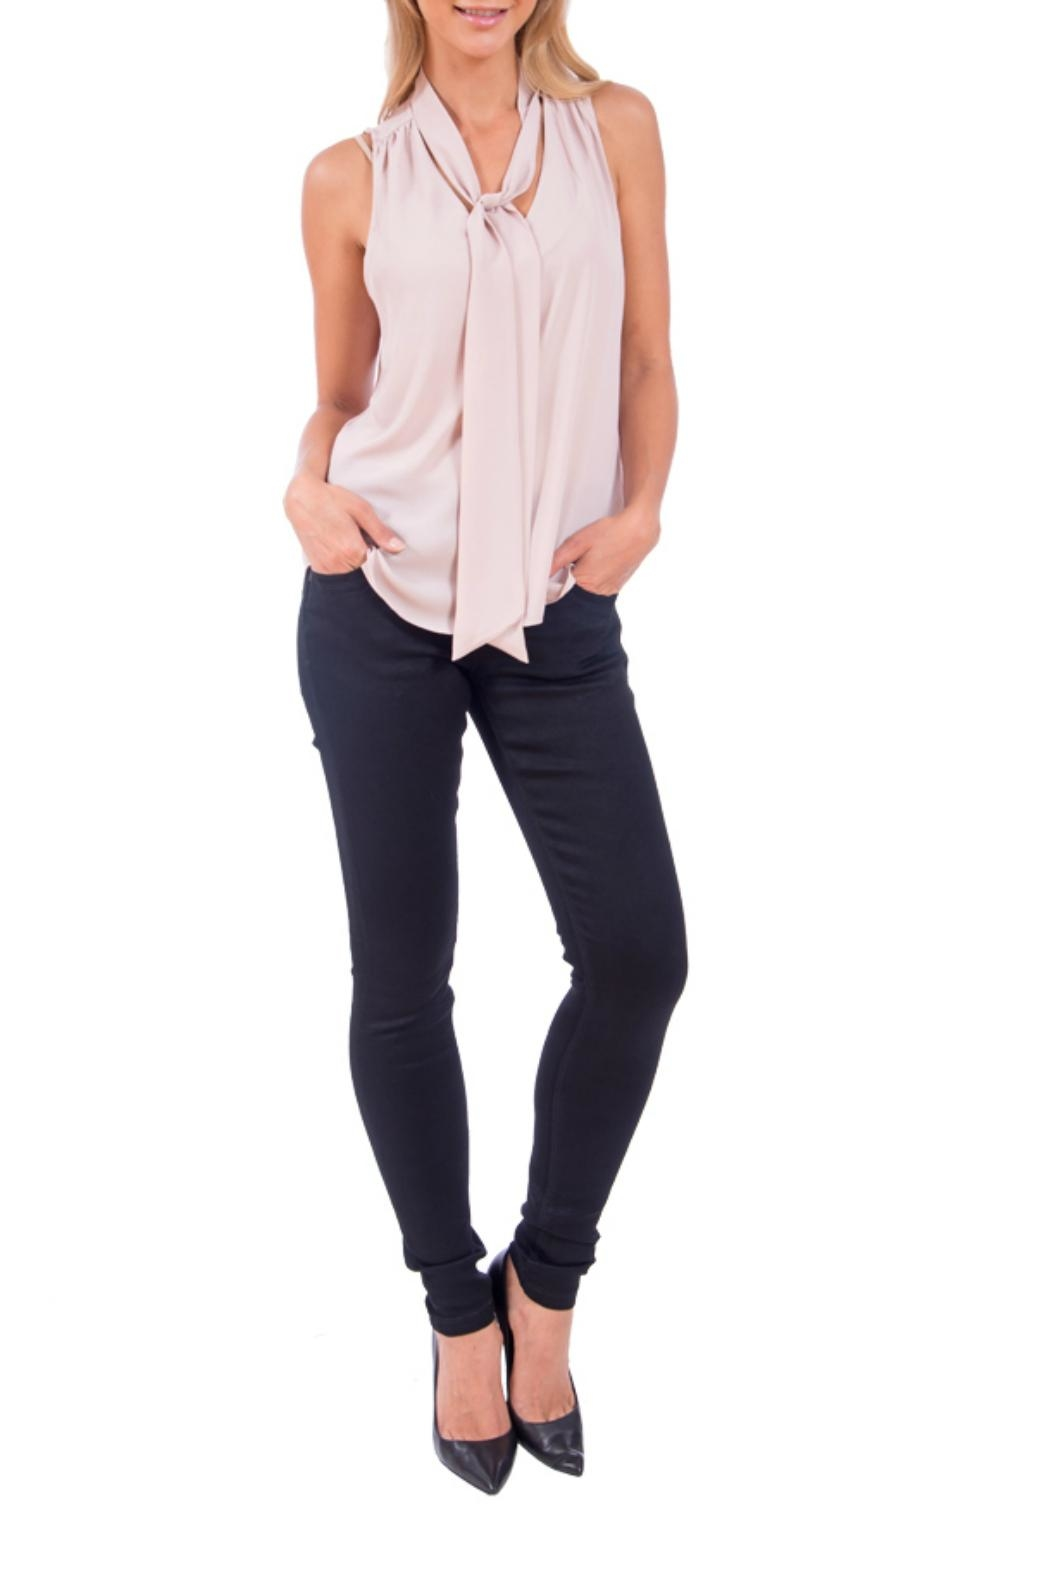 Lola Jeans Anna Pull On  Jeans - Side Cropped Image